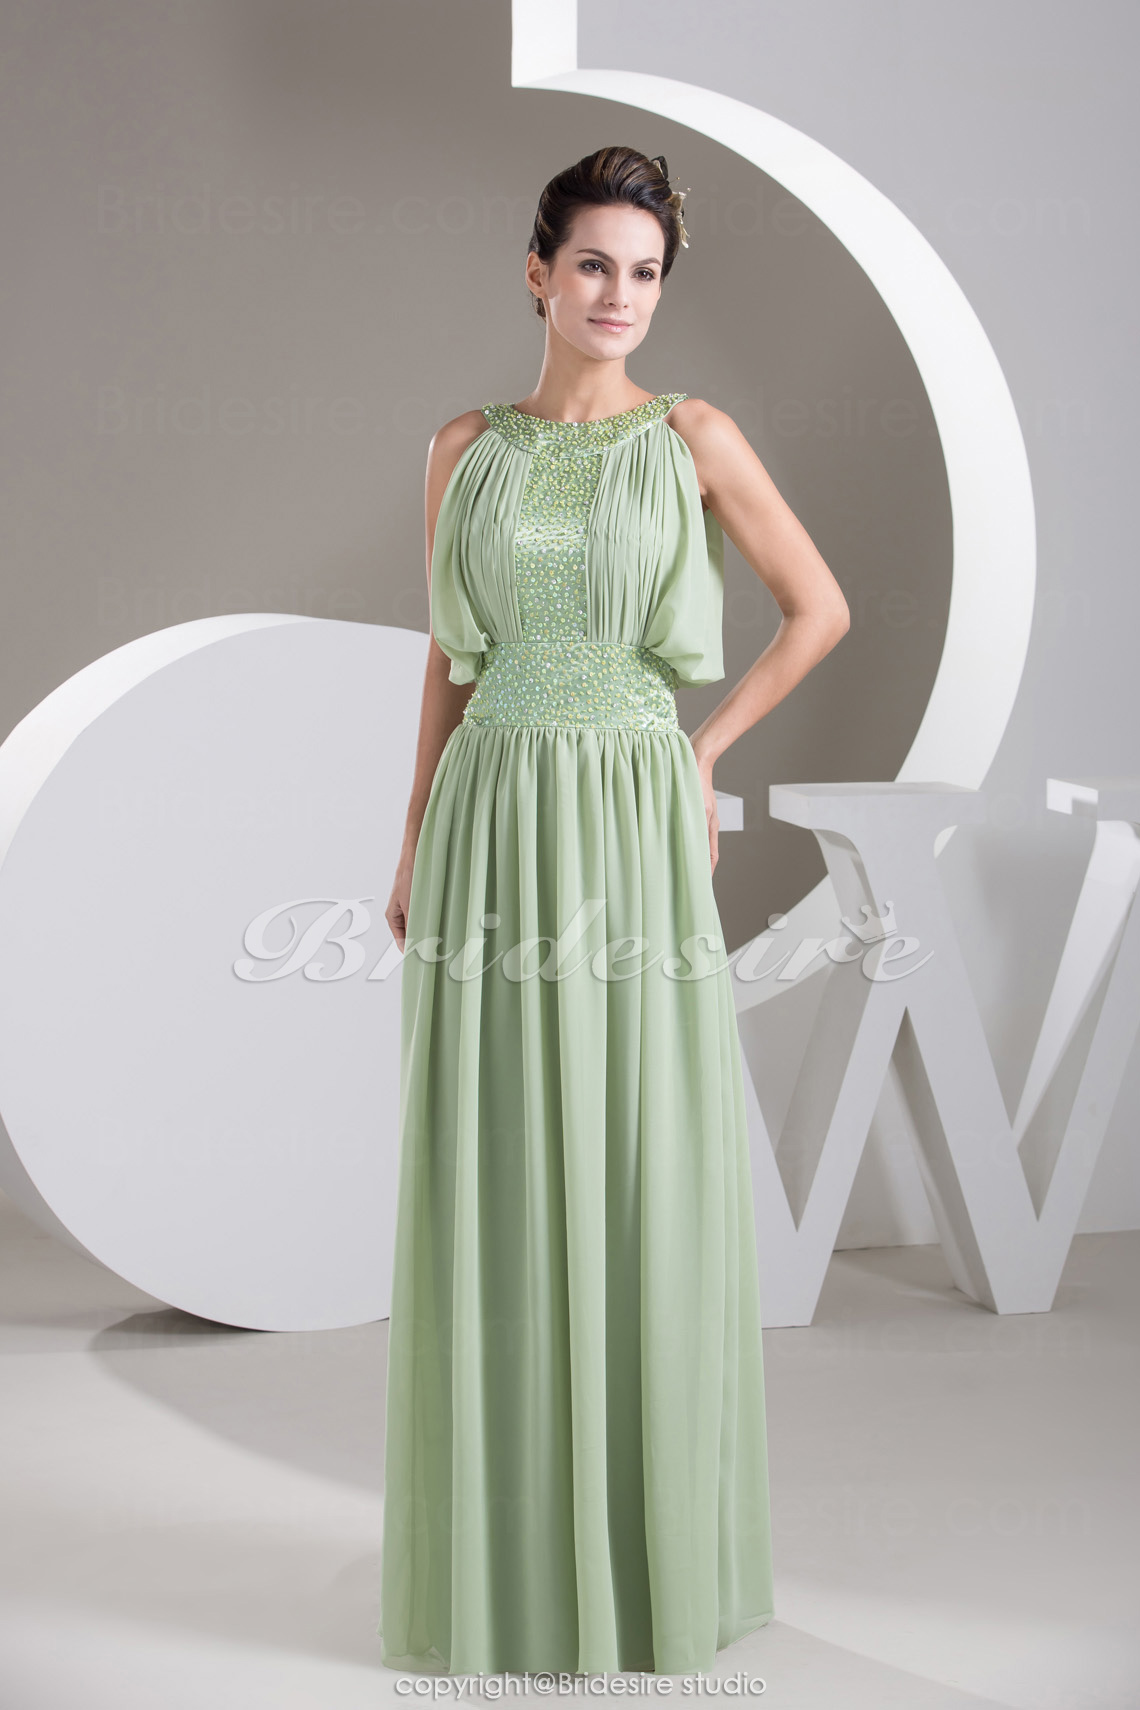 Sheath/Column Scoop Floor-length Sleeveless Chiffon Mother of the Bride Dress